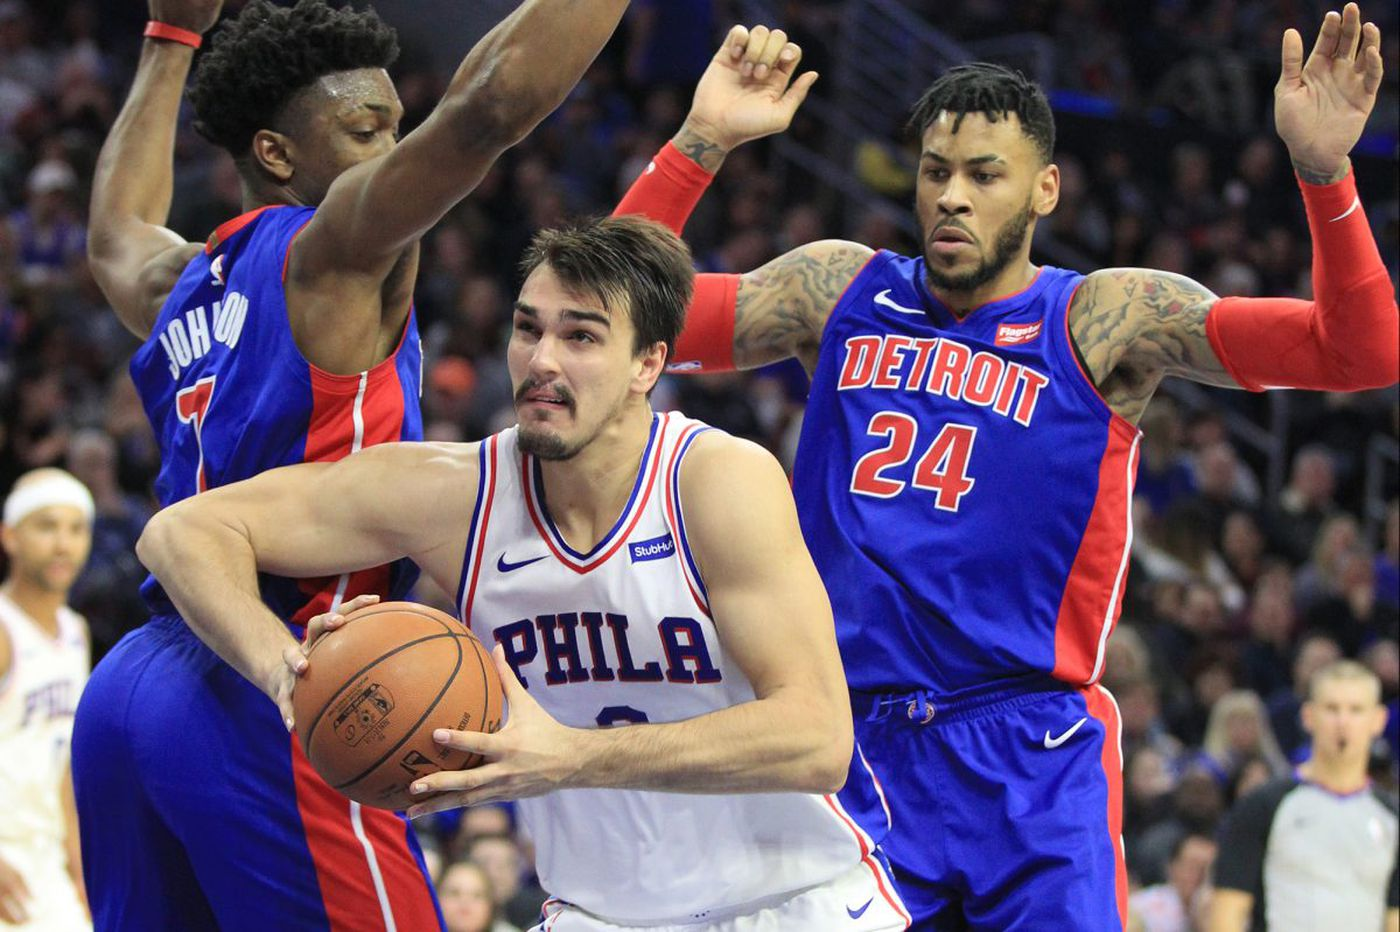 Sixers-Pistons: Robert Covington returns to form, and other quick thoughts from a 108-103 win